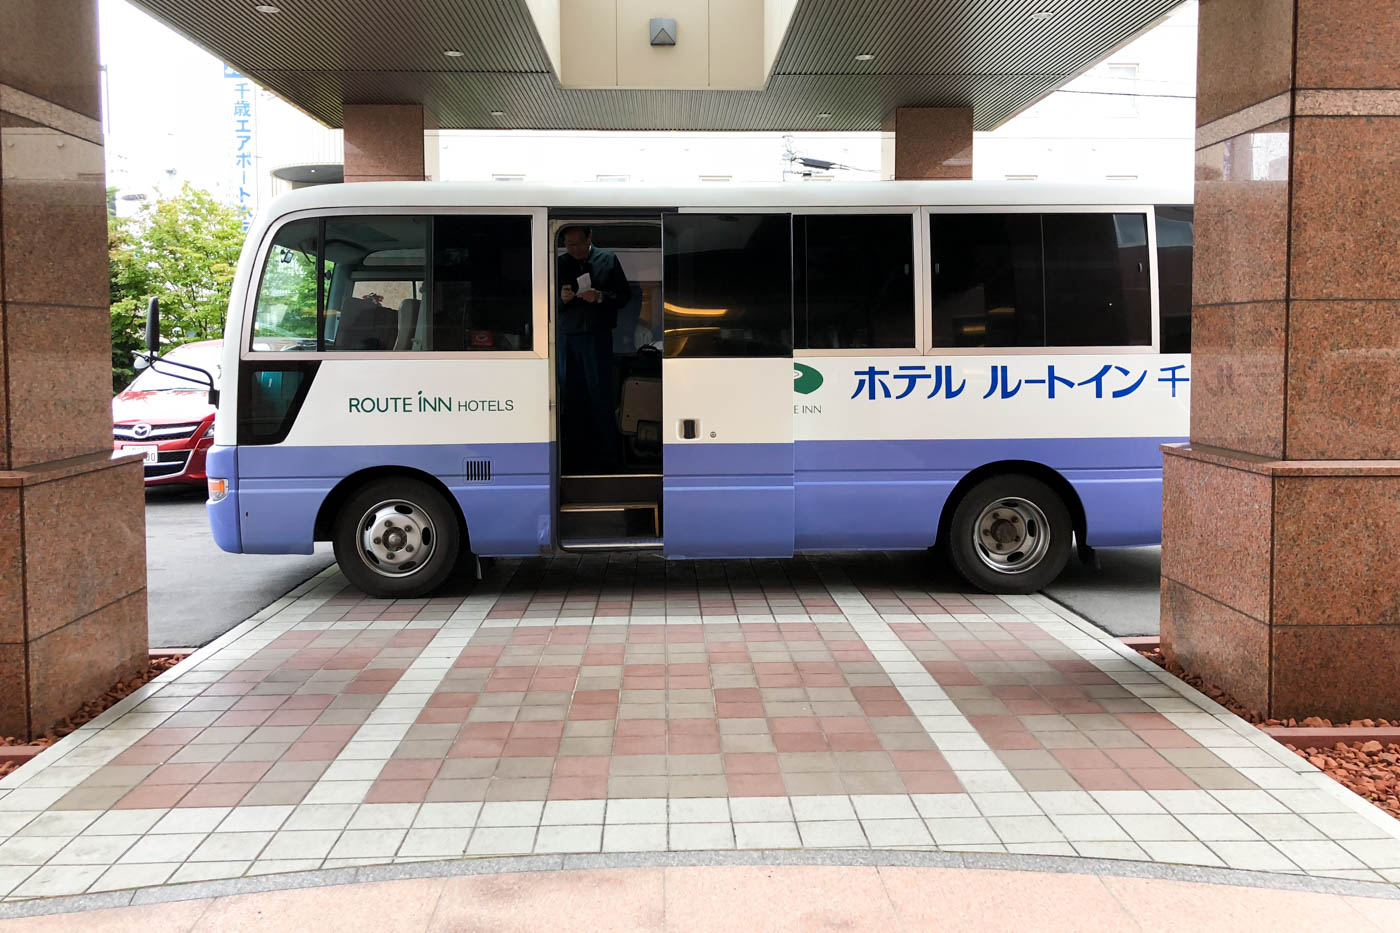 Hotel Route-Inn Chitose Airport Shuttle Bus